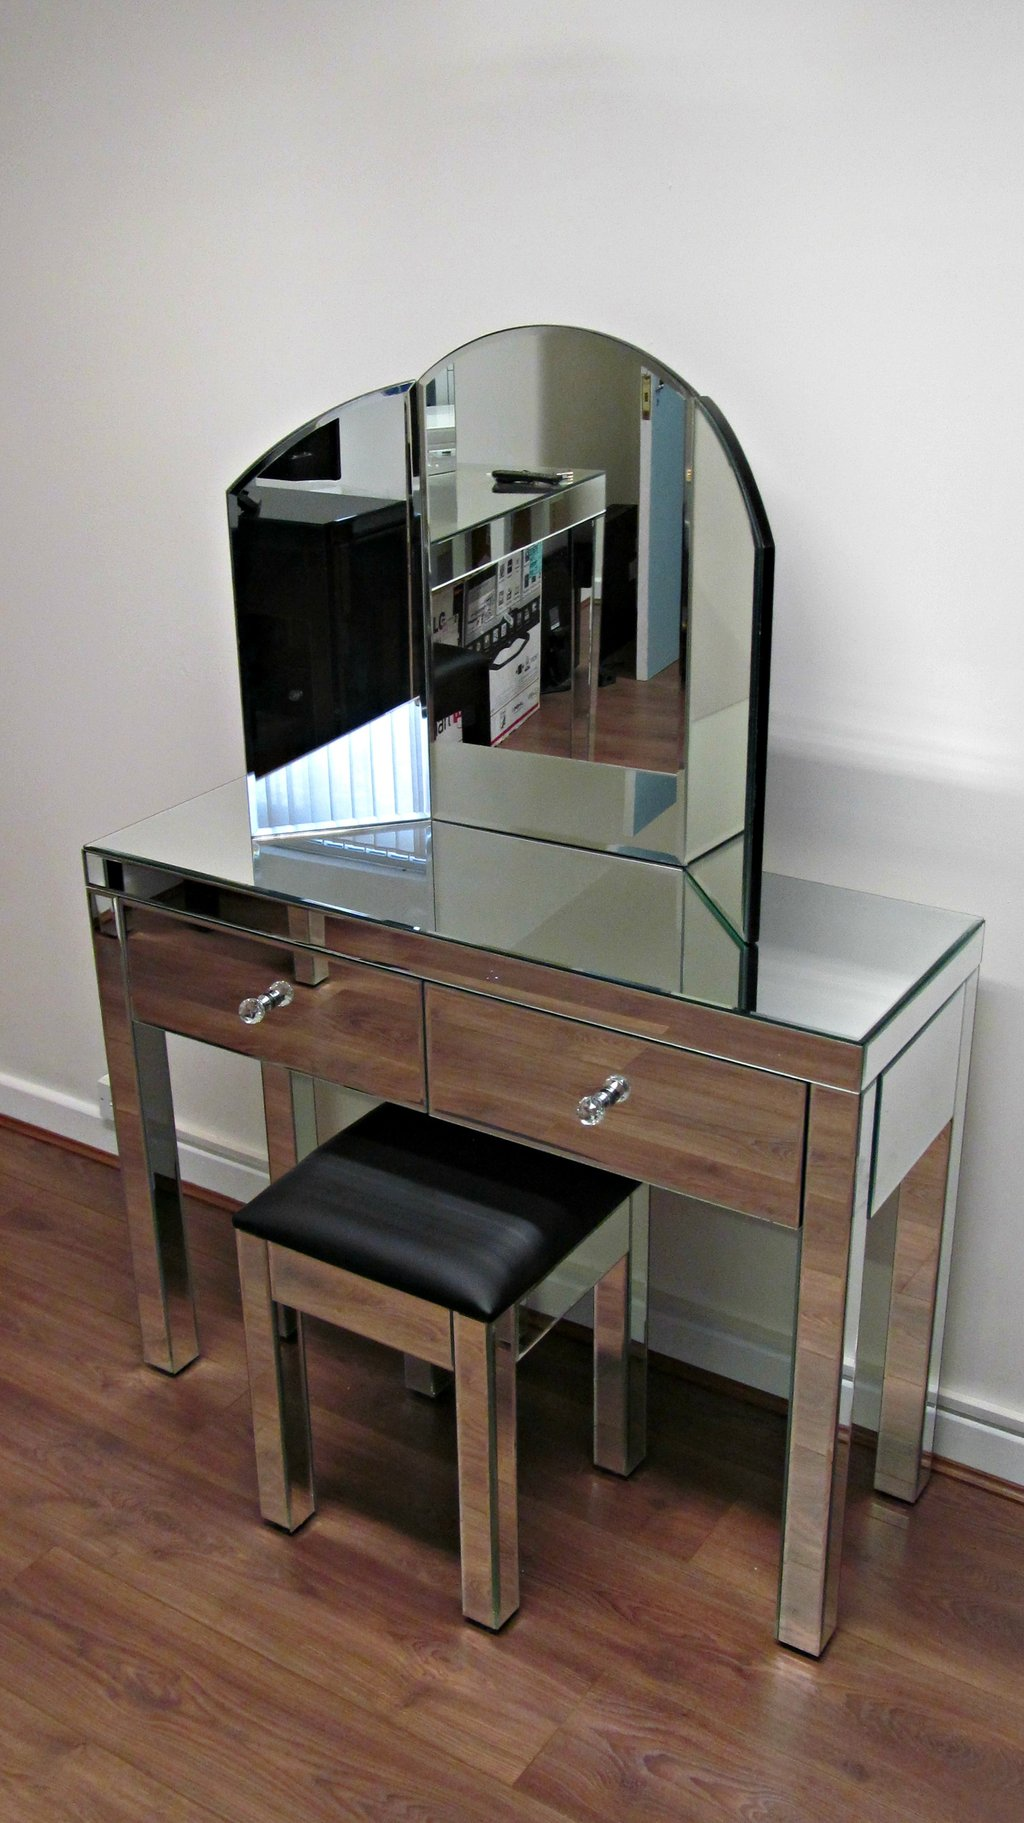 Mirrored Dressing Table Set Uk Home Design Idea Create Dressing Table With Mirrored Dresser